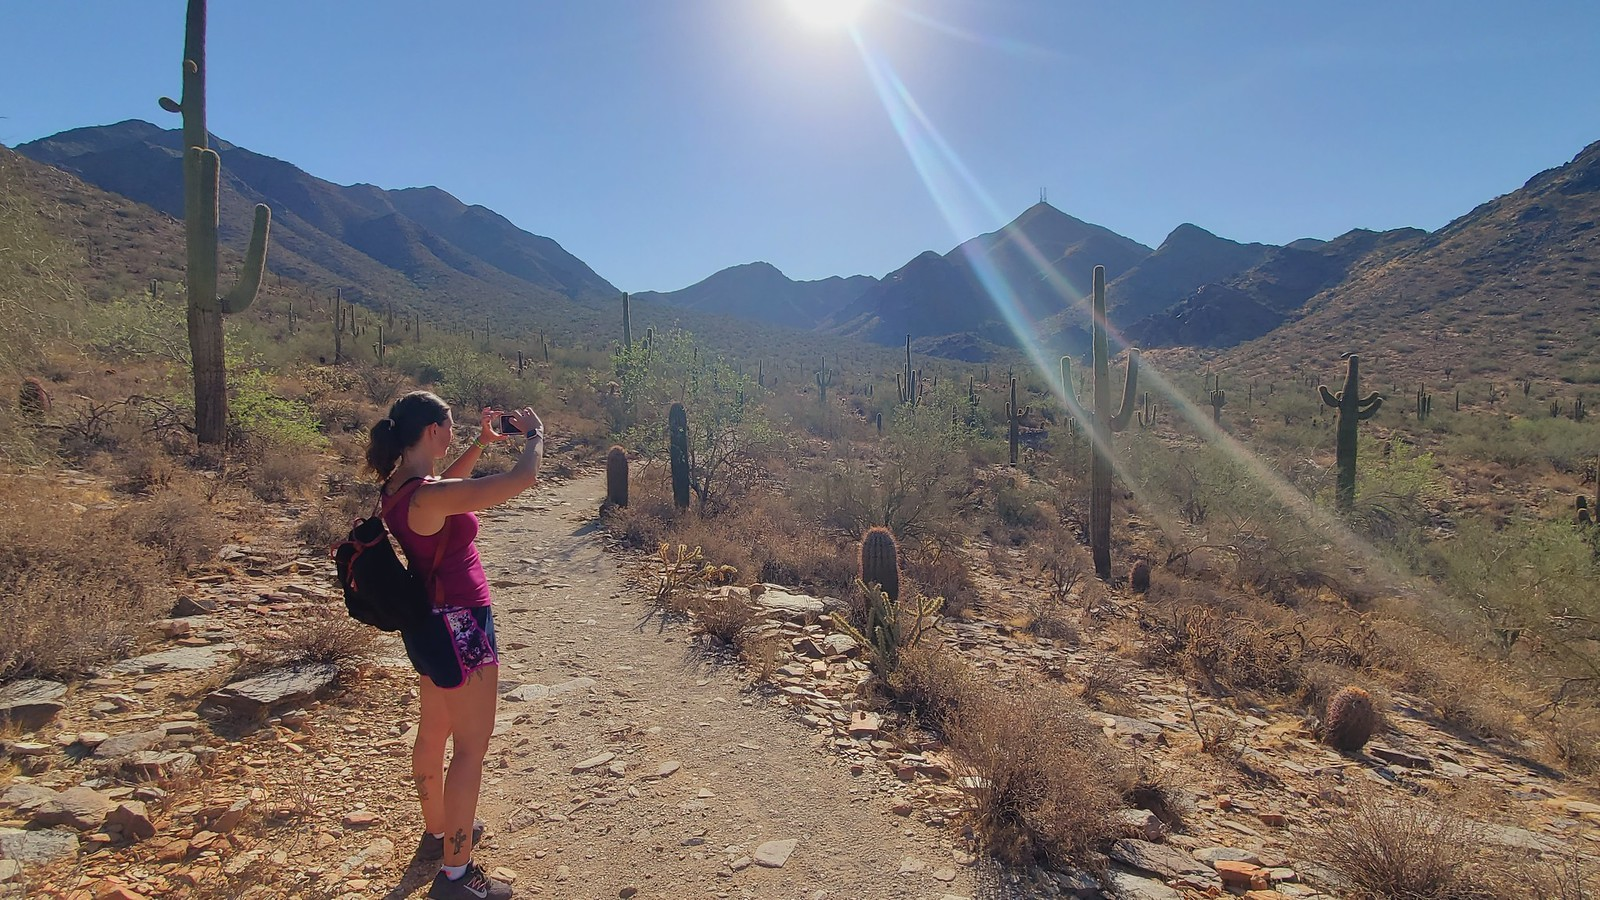 A woman hiker pauses in the bright sunshine to take a picture of the beautiful scenery during one of the Scottsdale hiking tours from the Wild Bunch Desert Guides.